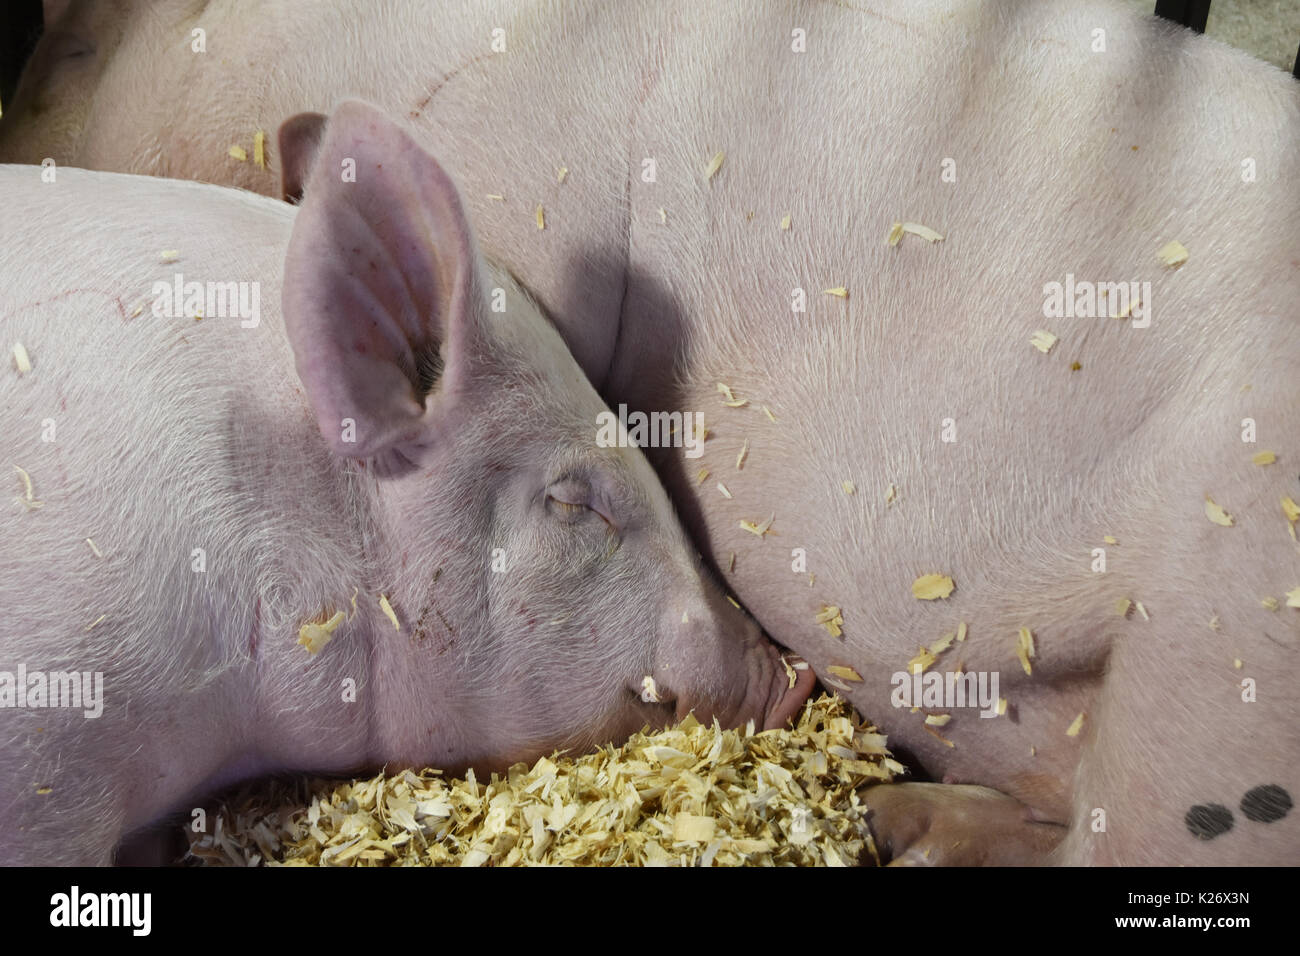 Two pale pink pigs snuggled in sleep - Stock Image